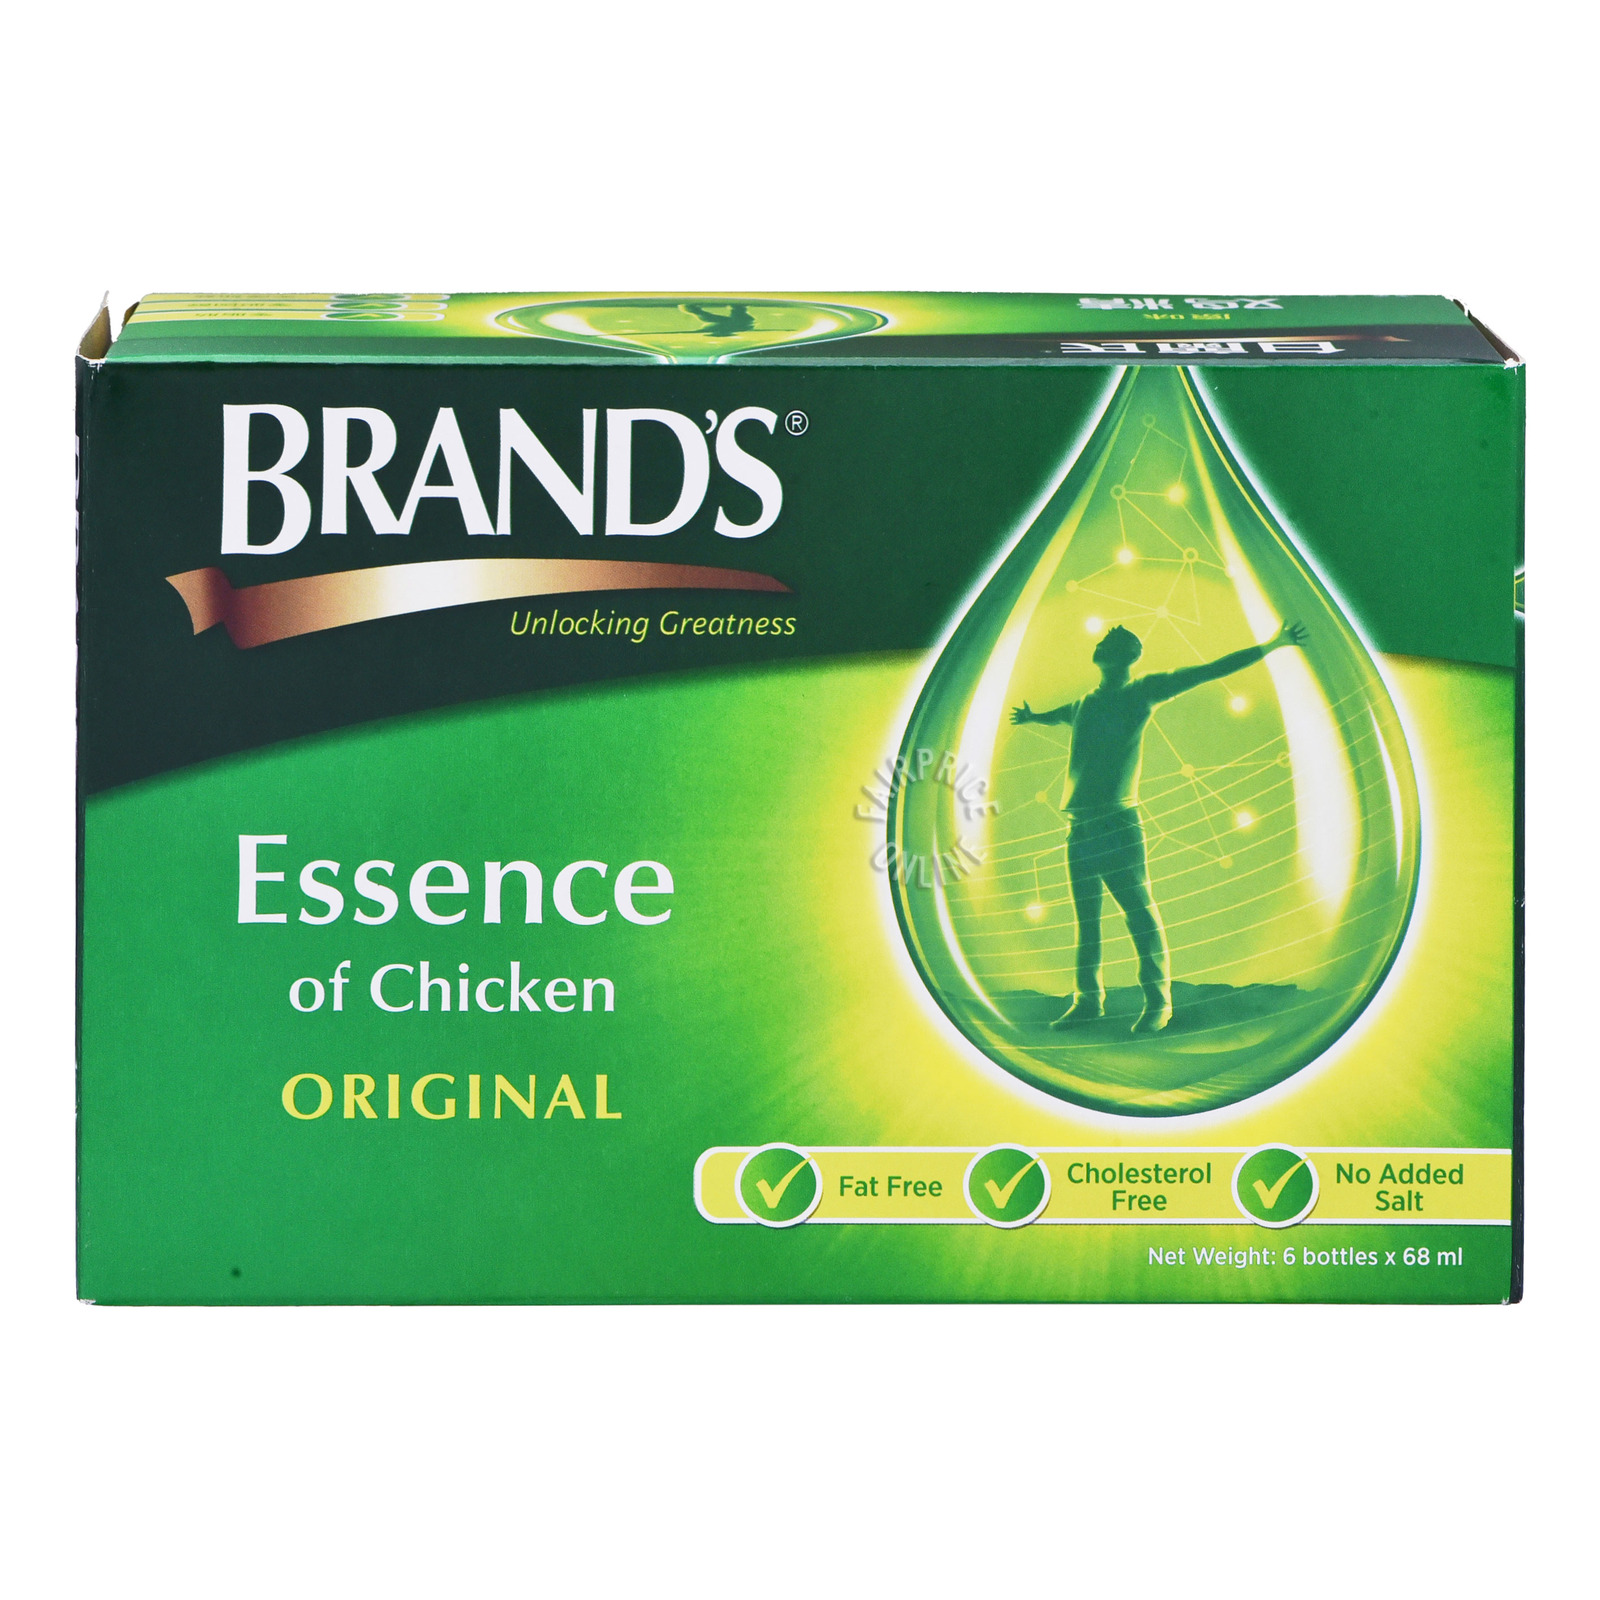 Brand's Essence of Chicken - Original